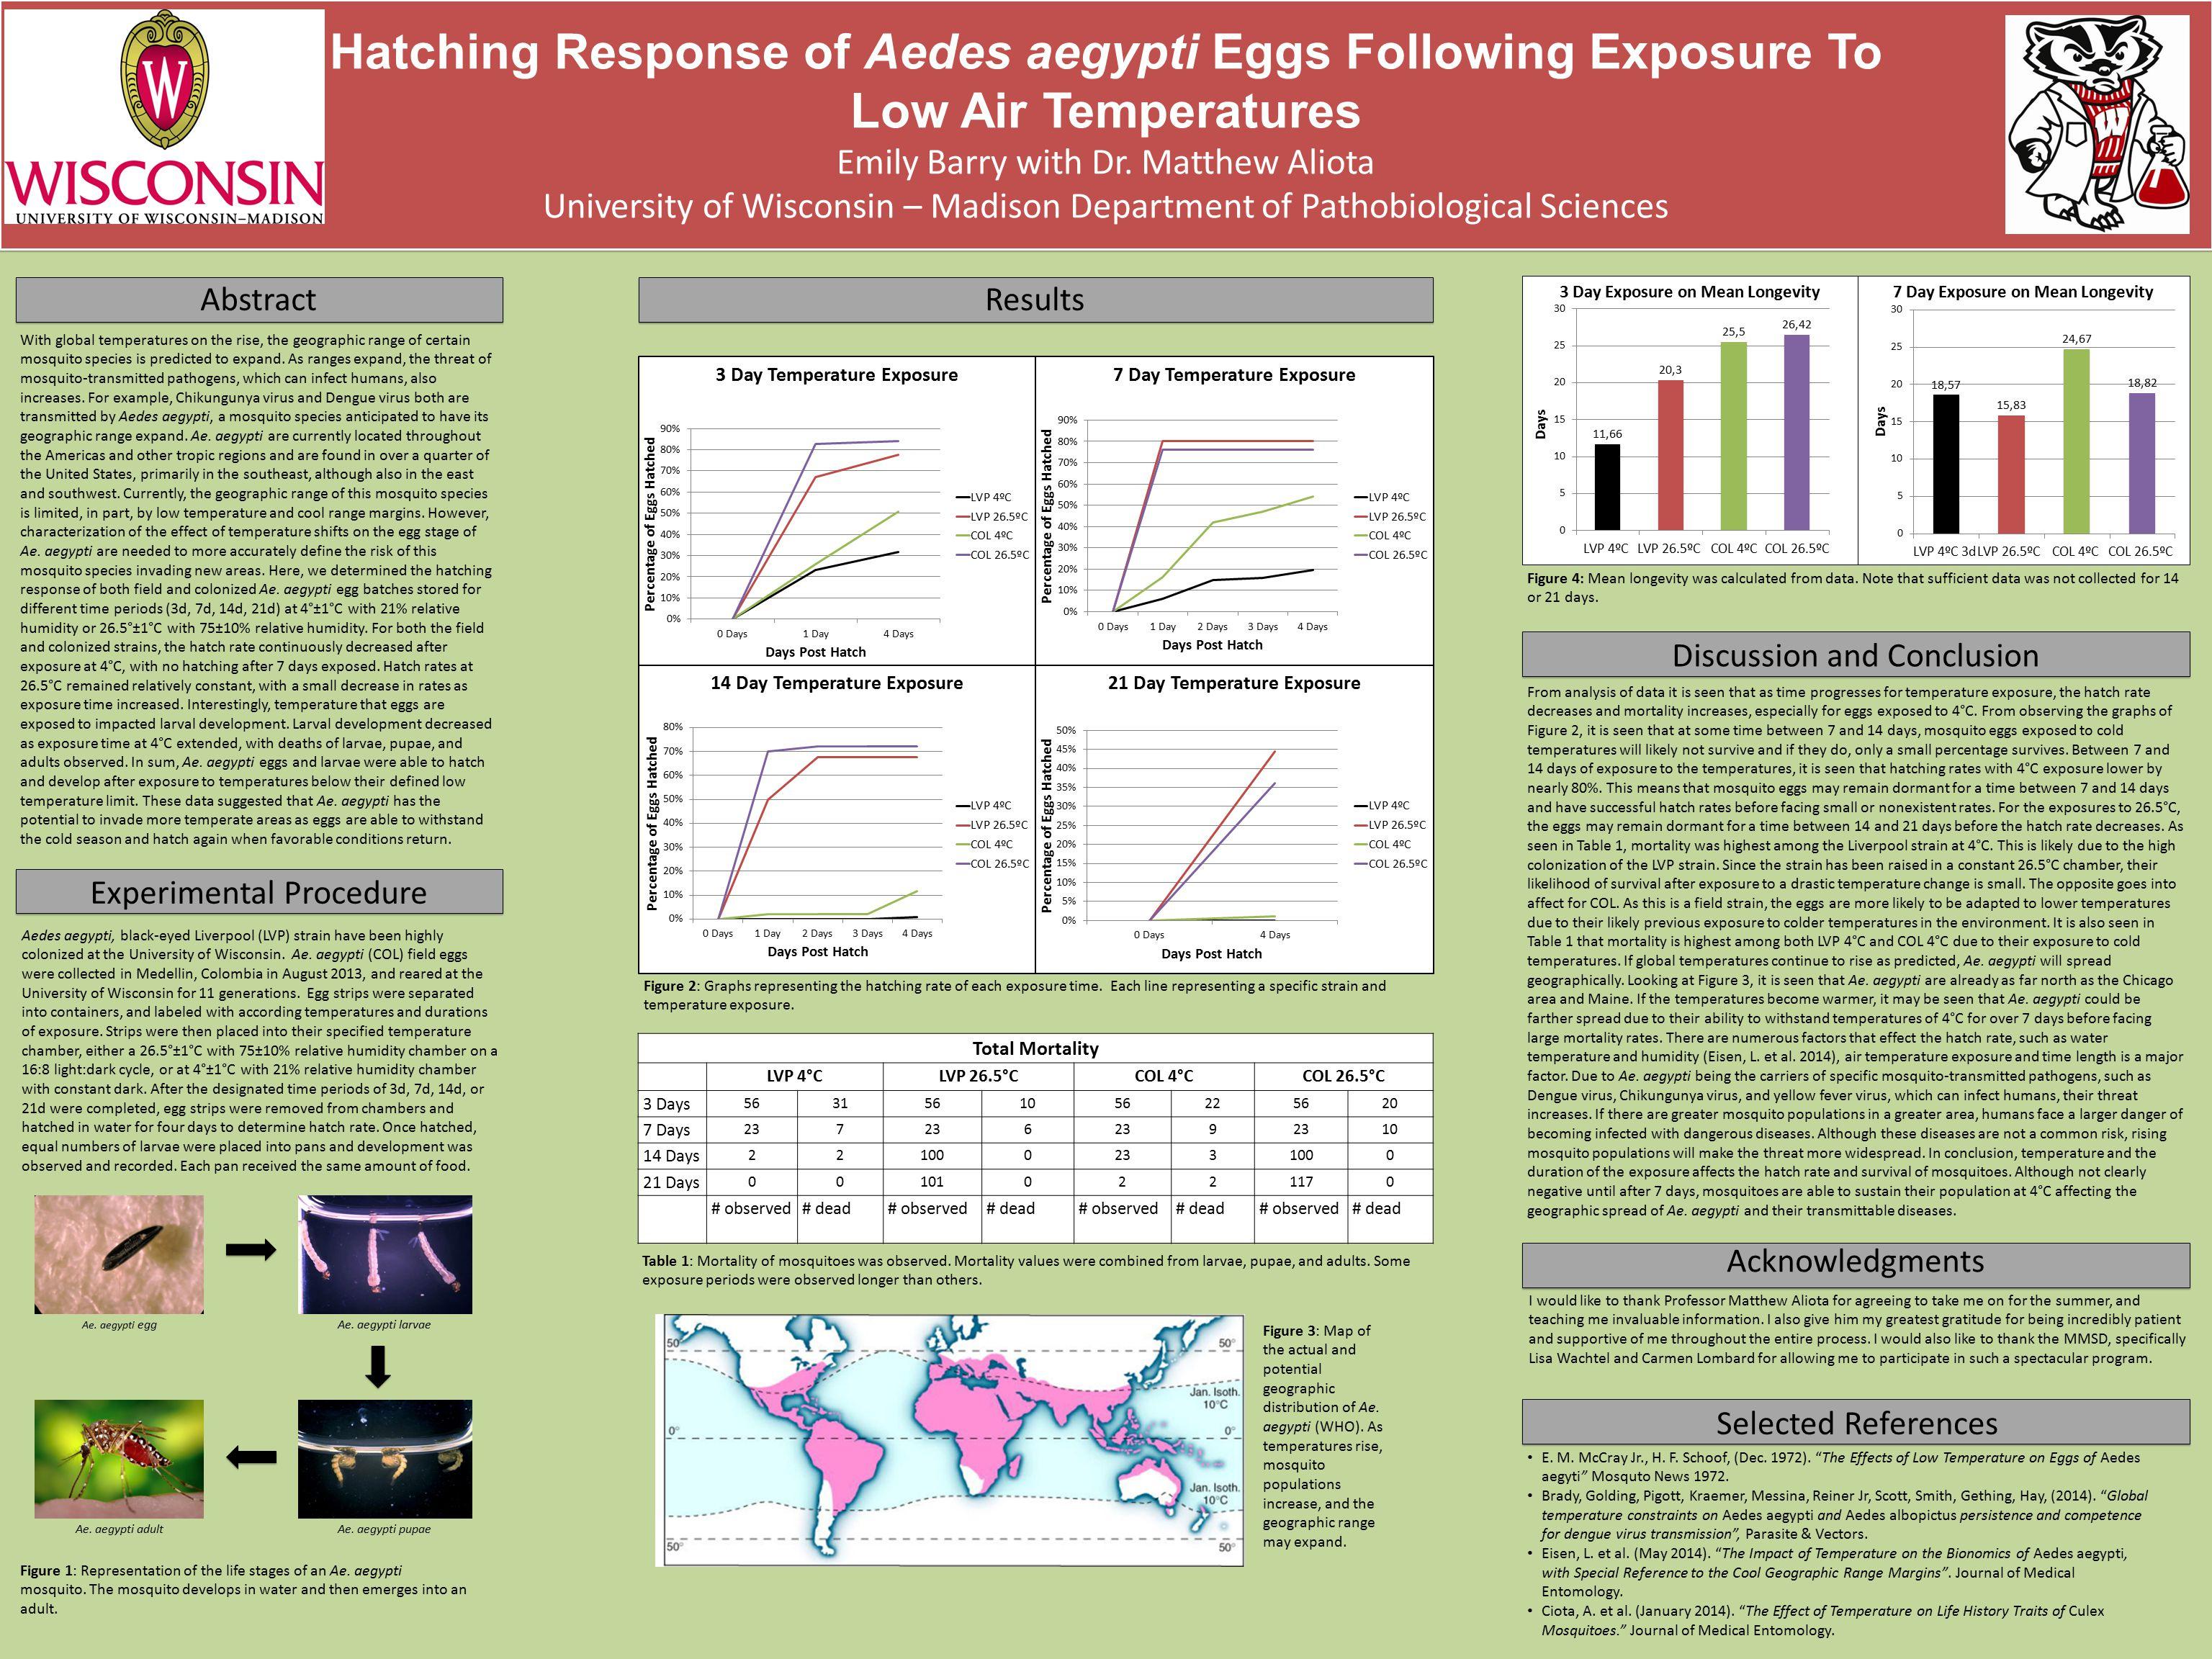 Hatching Response of Aedes aegypti Eggs Following Exposure To Low Air Temperatures Emily Barry with Dr.